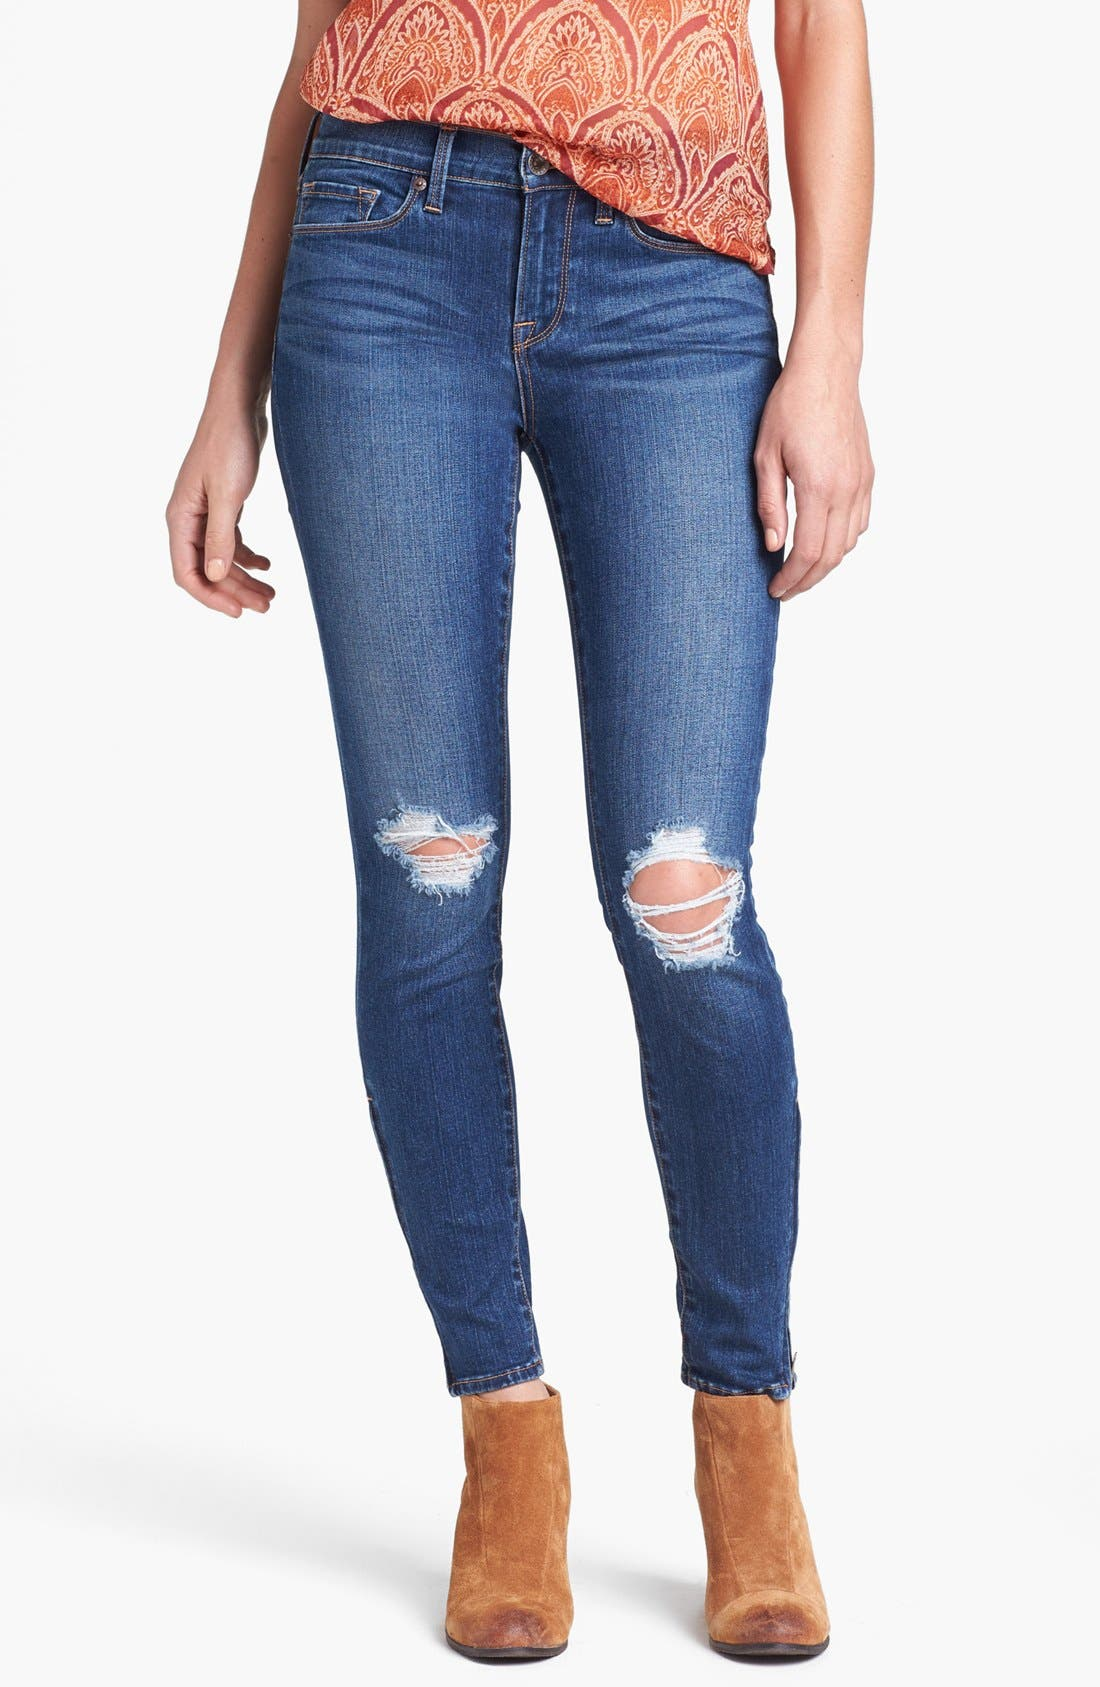 Alternate Image 1 Selected - Lucky Brand 'Sofia' Destroyed Ankle Zip Skinny Jeans (Possum Trot)